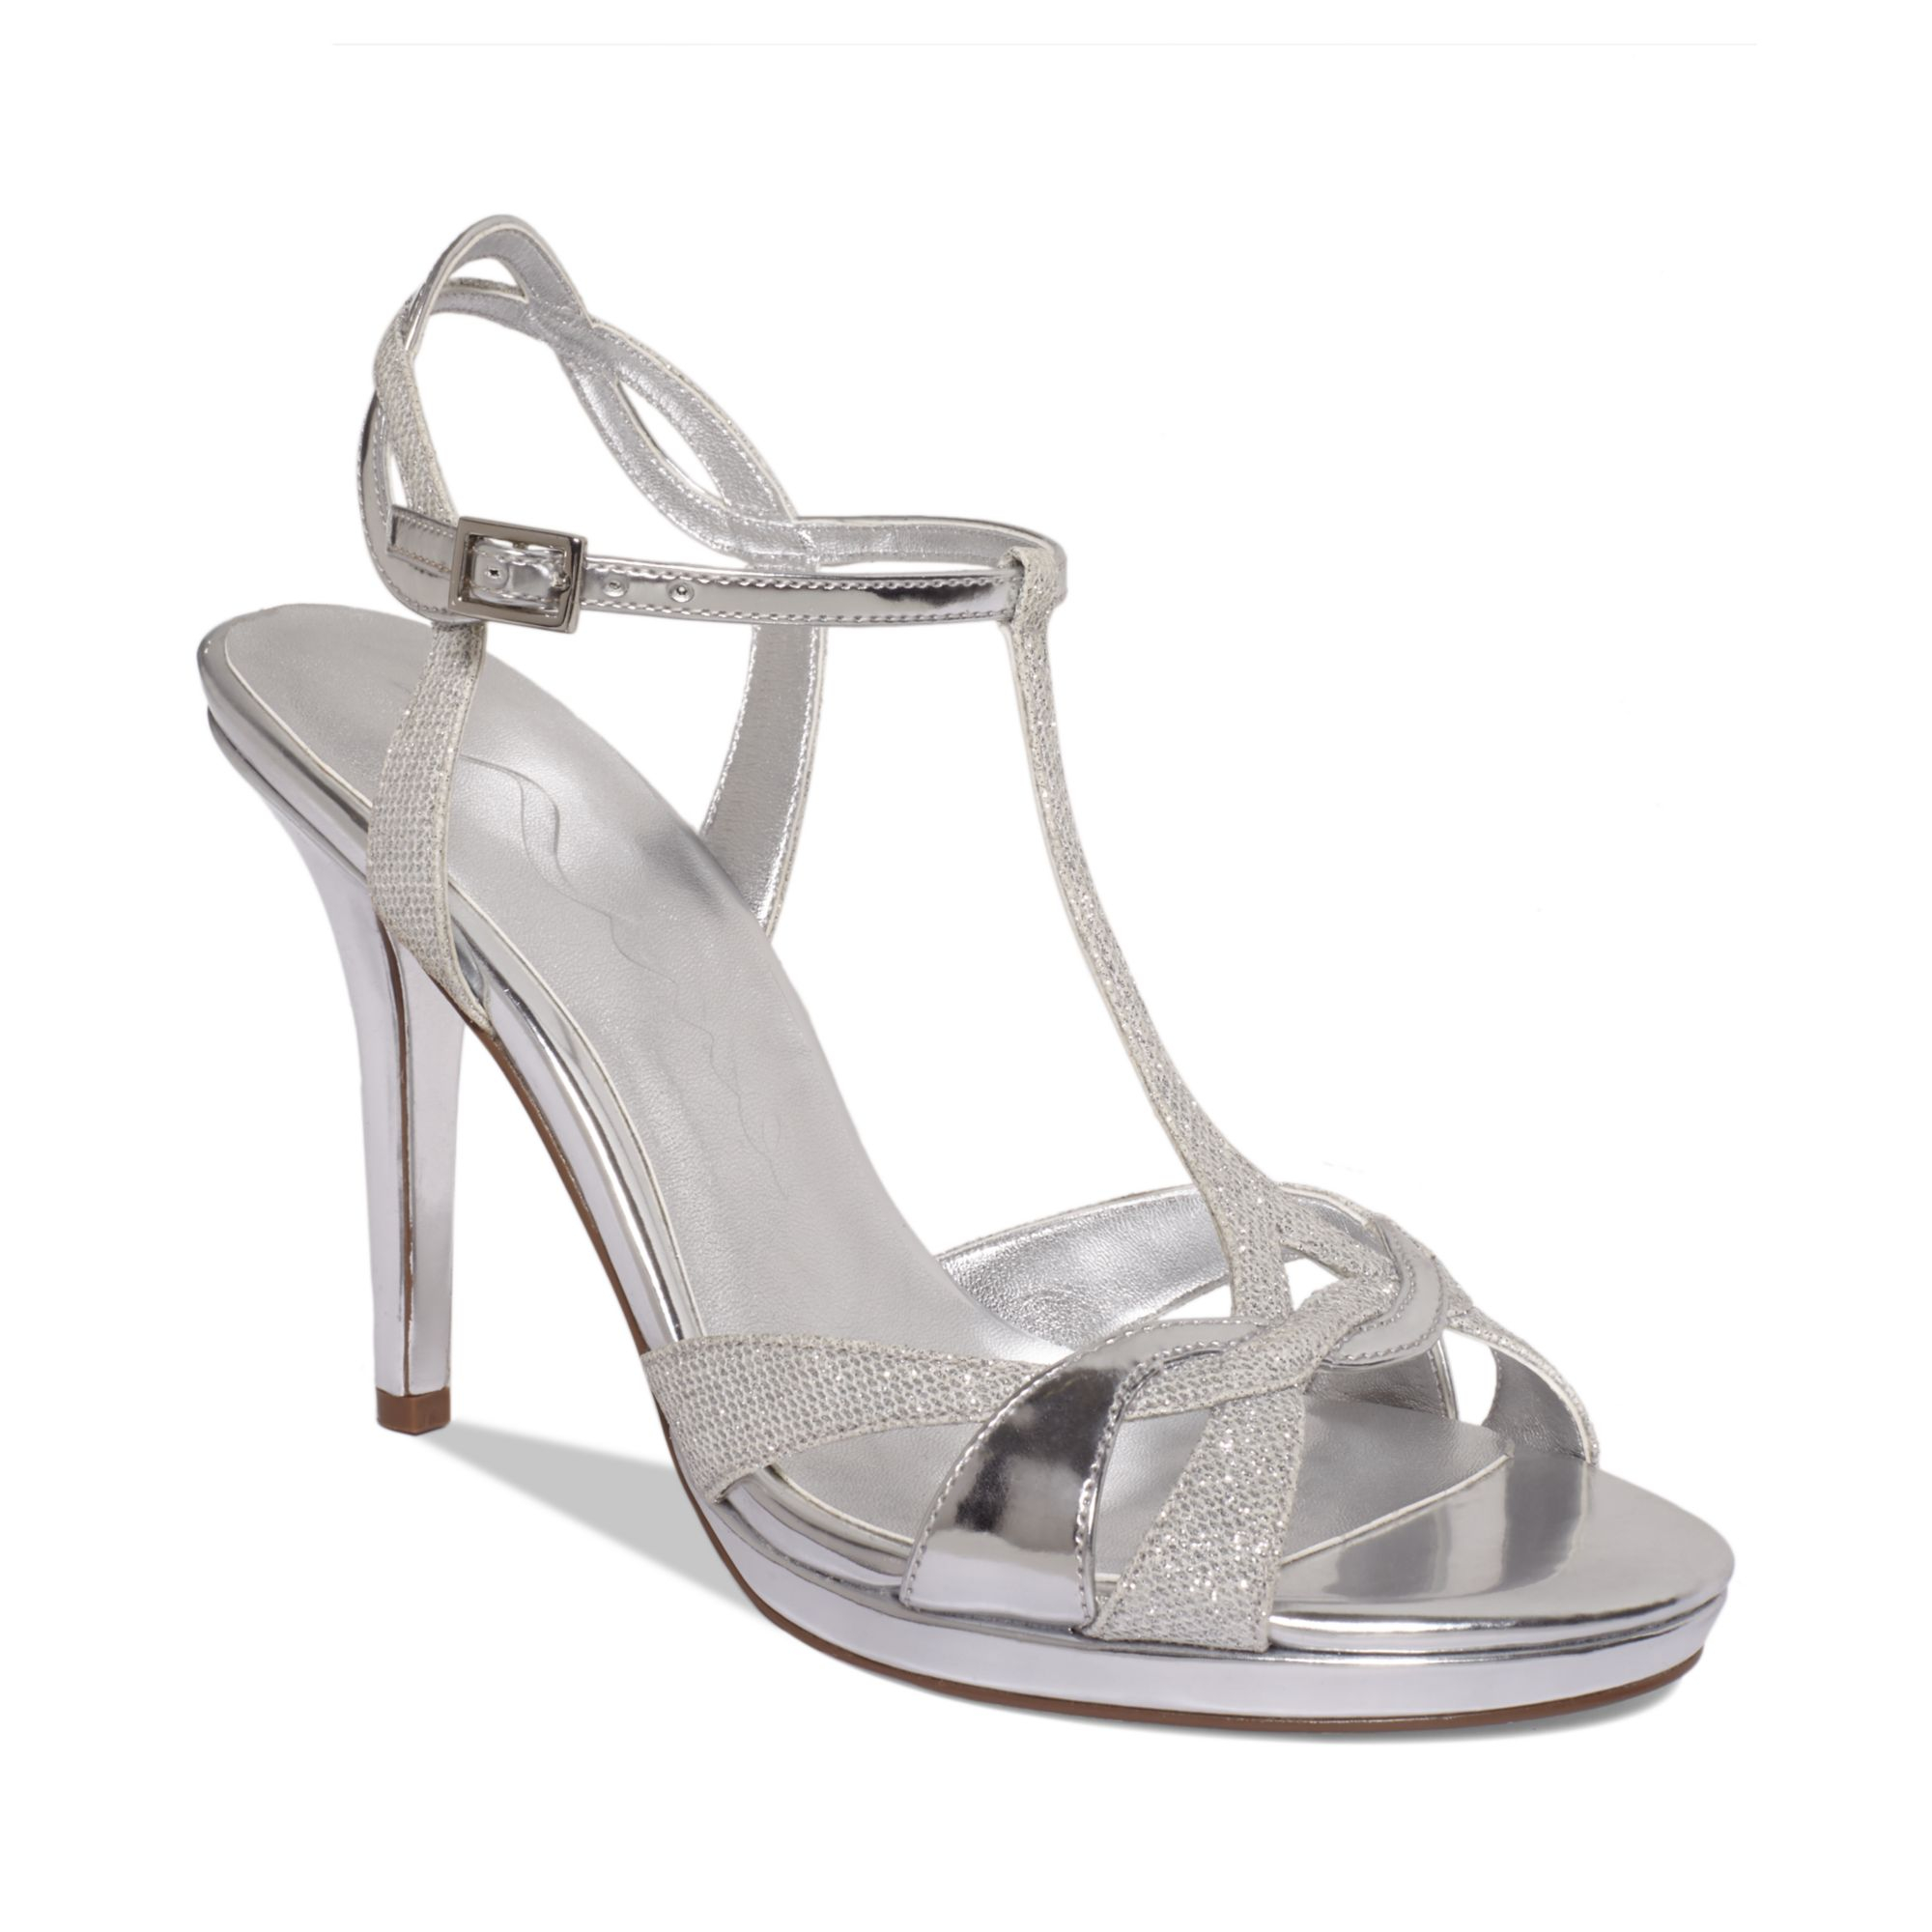 Nina Reilly Evening Sandals A Macys Exclusive In Silver Lyst